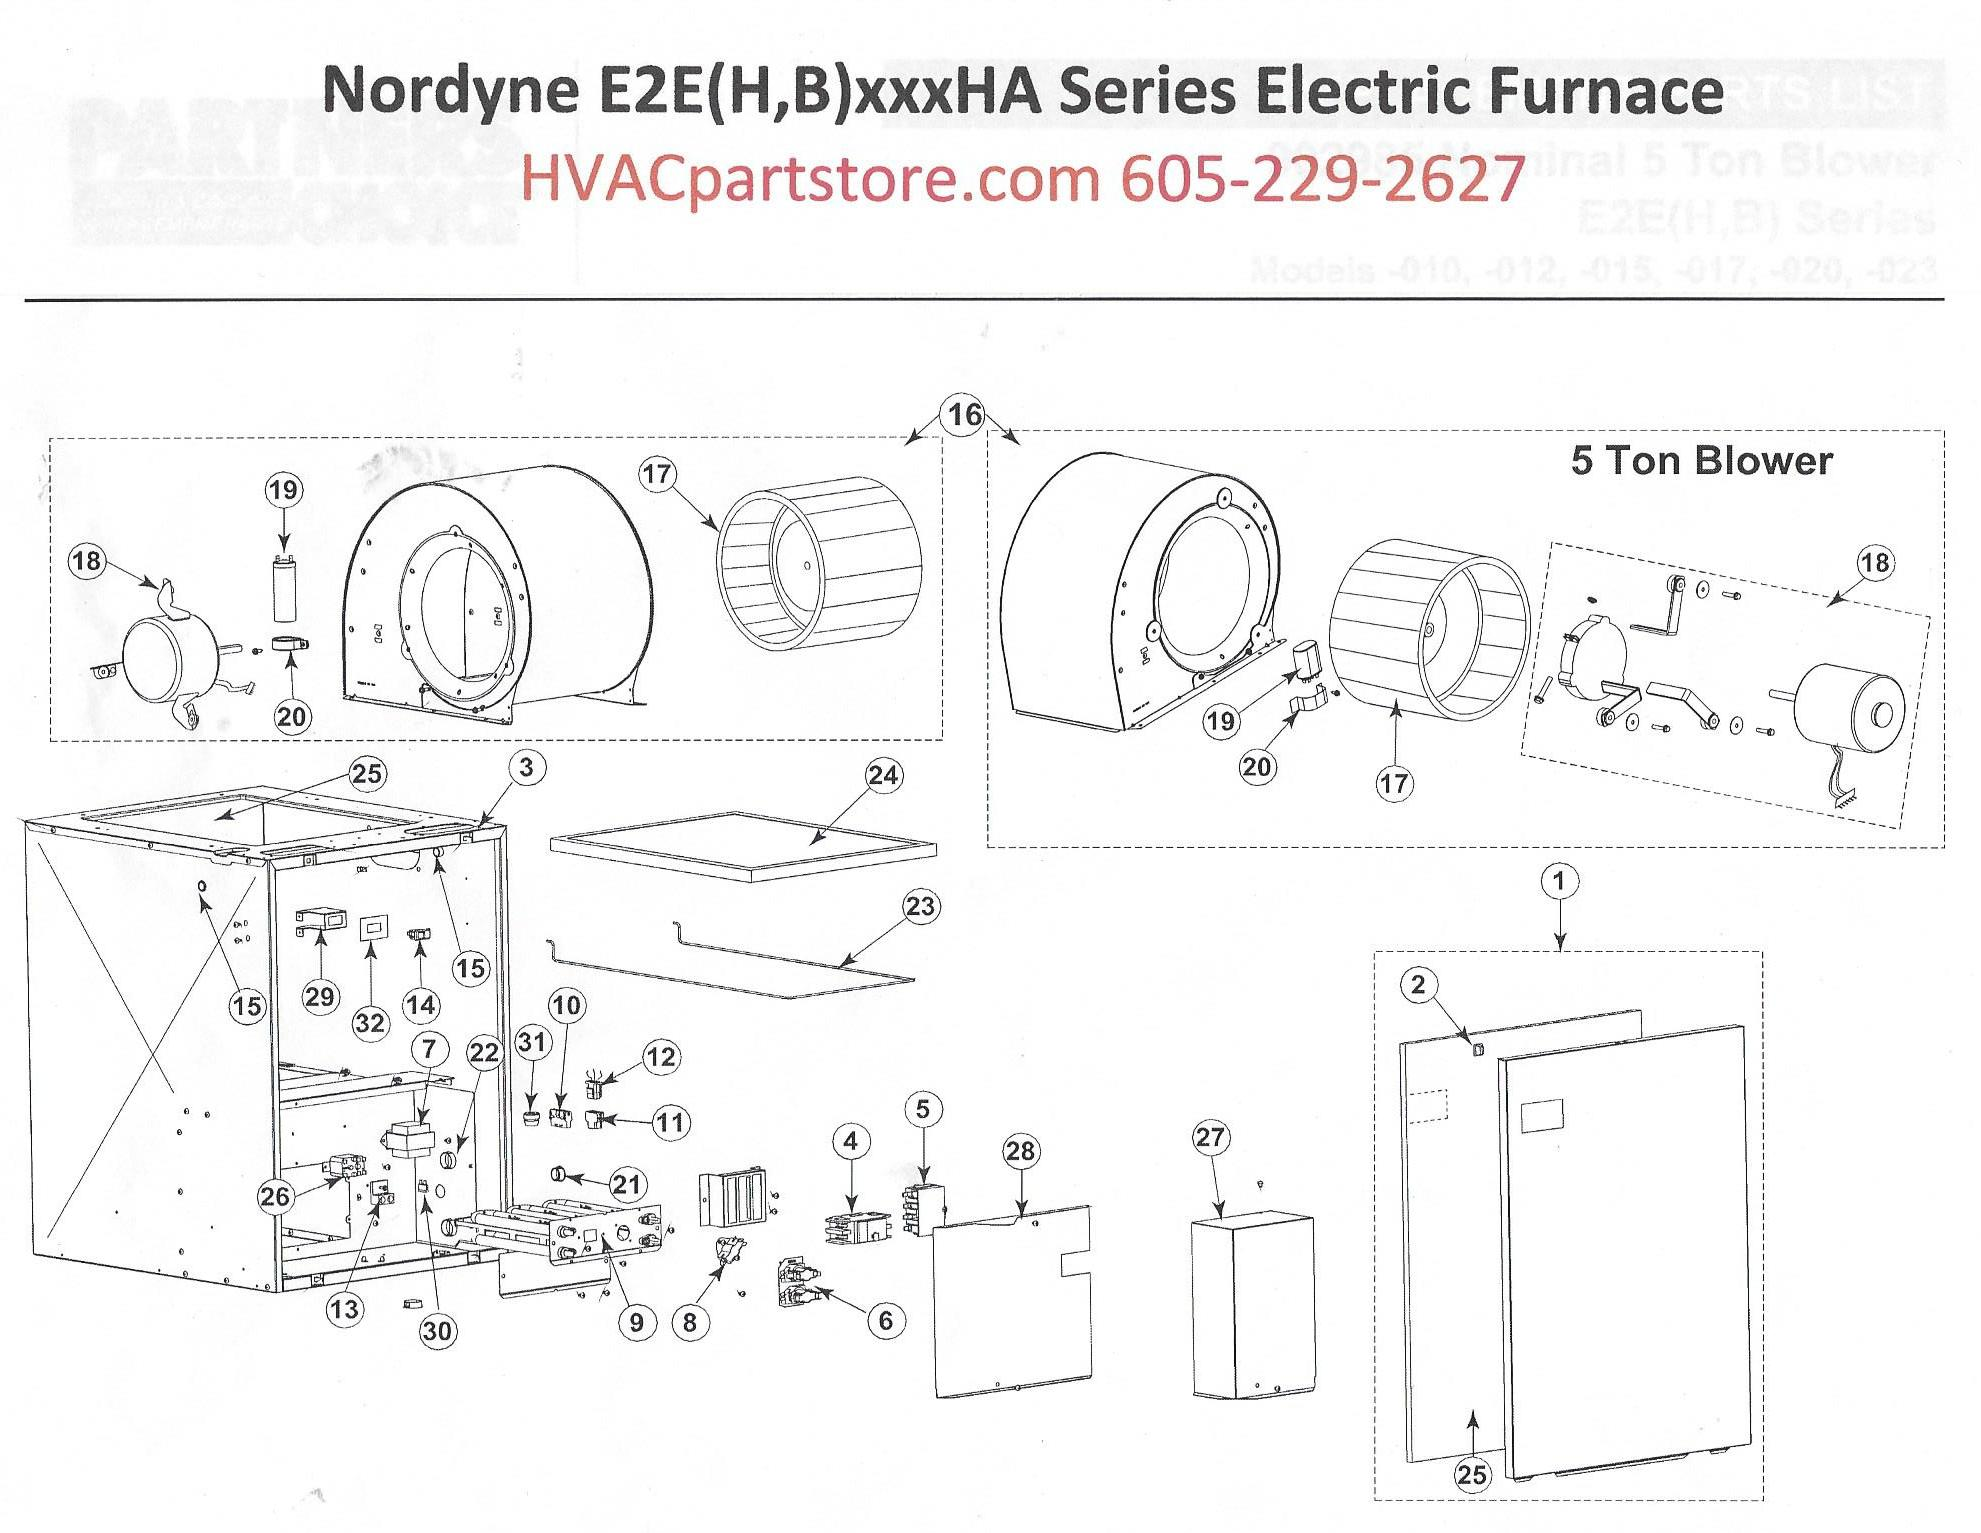 E2HADiagram_2abb159a 7eb1 4d20 871c c9c3b5366288?7399571456907368943 e2eb015hb nordyne electric furnace parts hvacpartstore e2eb 015hb wiring diagram at edmiracle.co